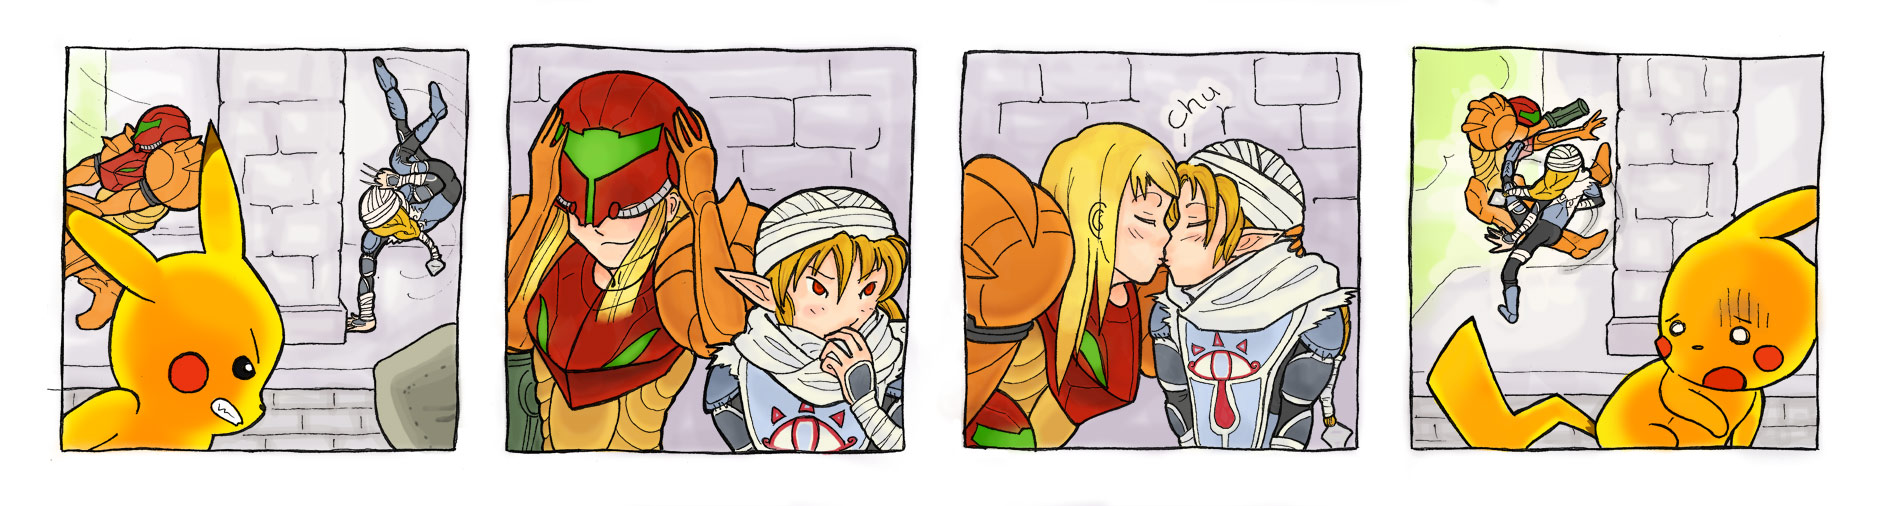 zero suit samus and link kiss - photo #18